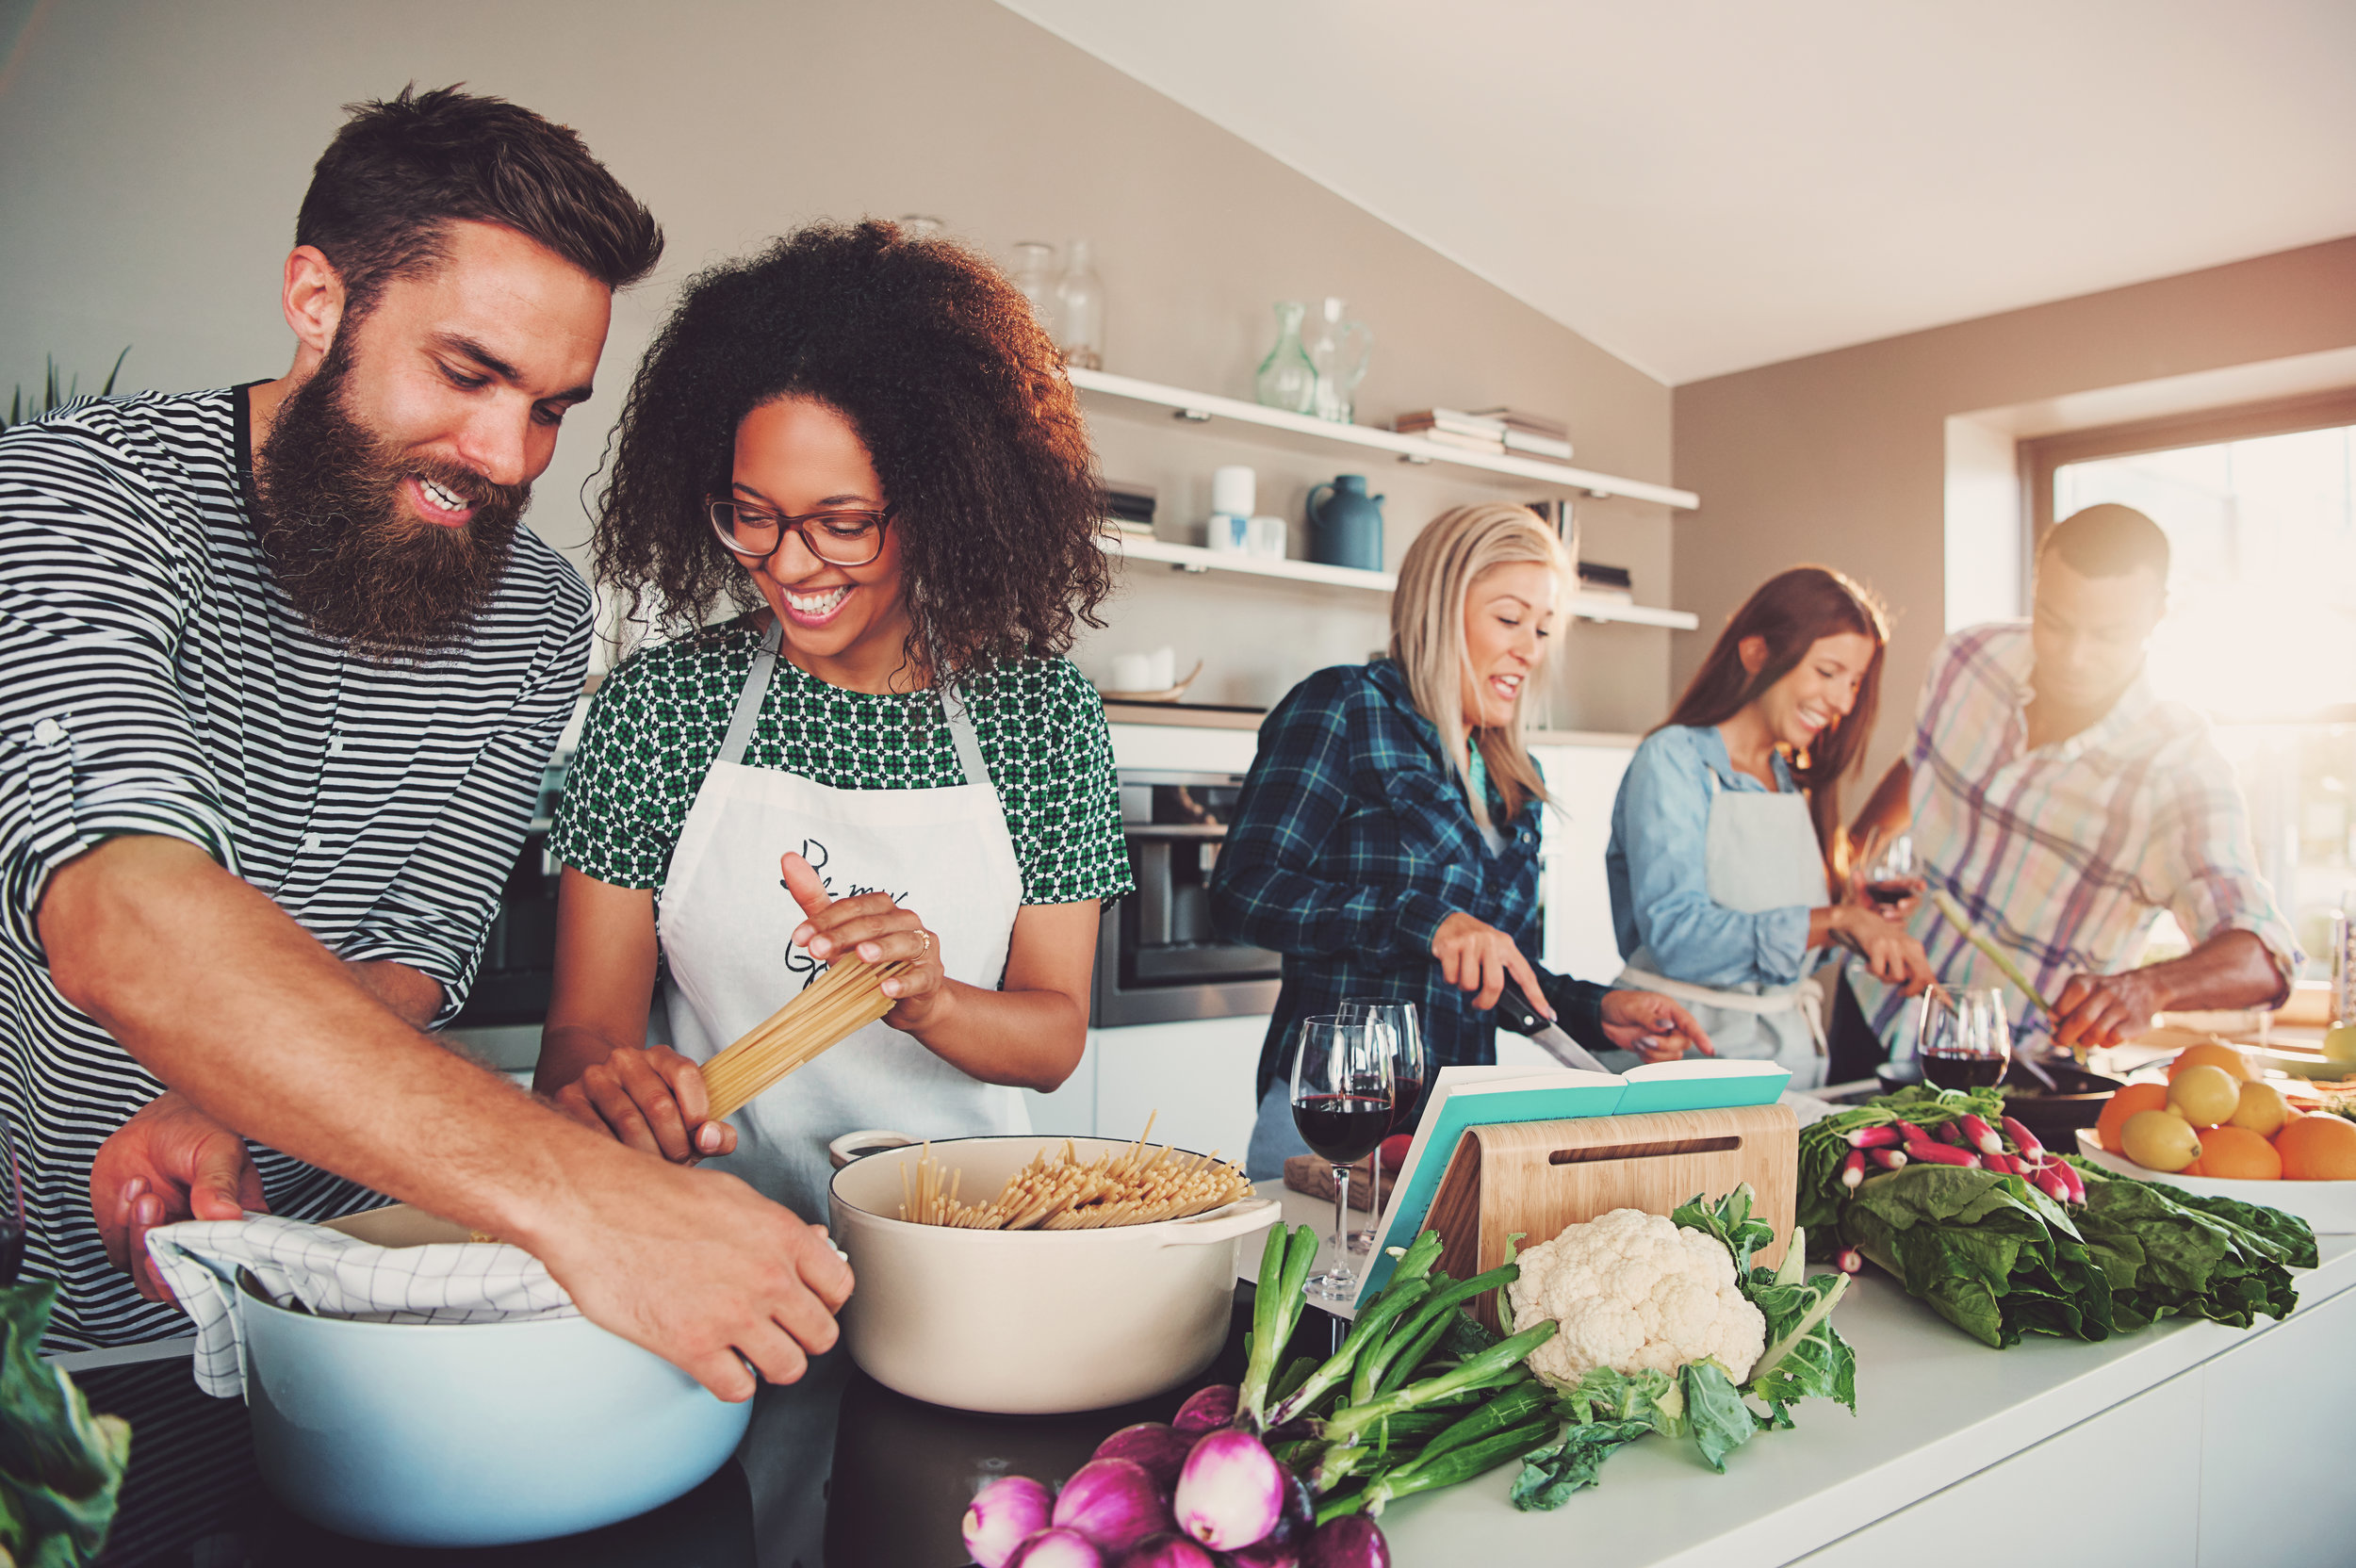 Cook at home more  Home-cooked meals can give us the opportunity to choose component ingredients over processed meals. Not only does a home-cooked bring the family together, but when you see which ingredients are going into it, you make conscious choices about what you truly want to eat.